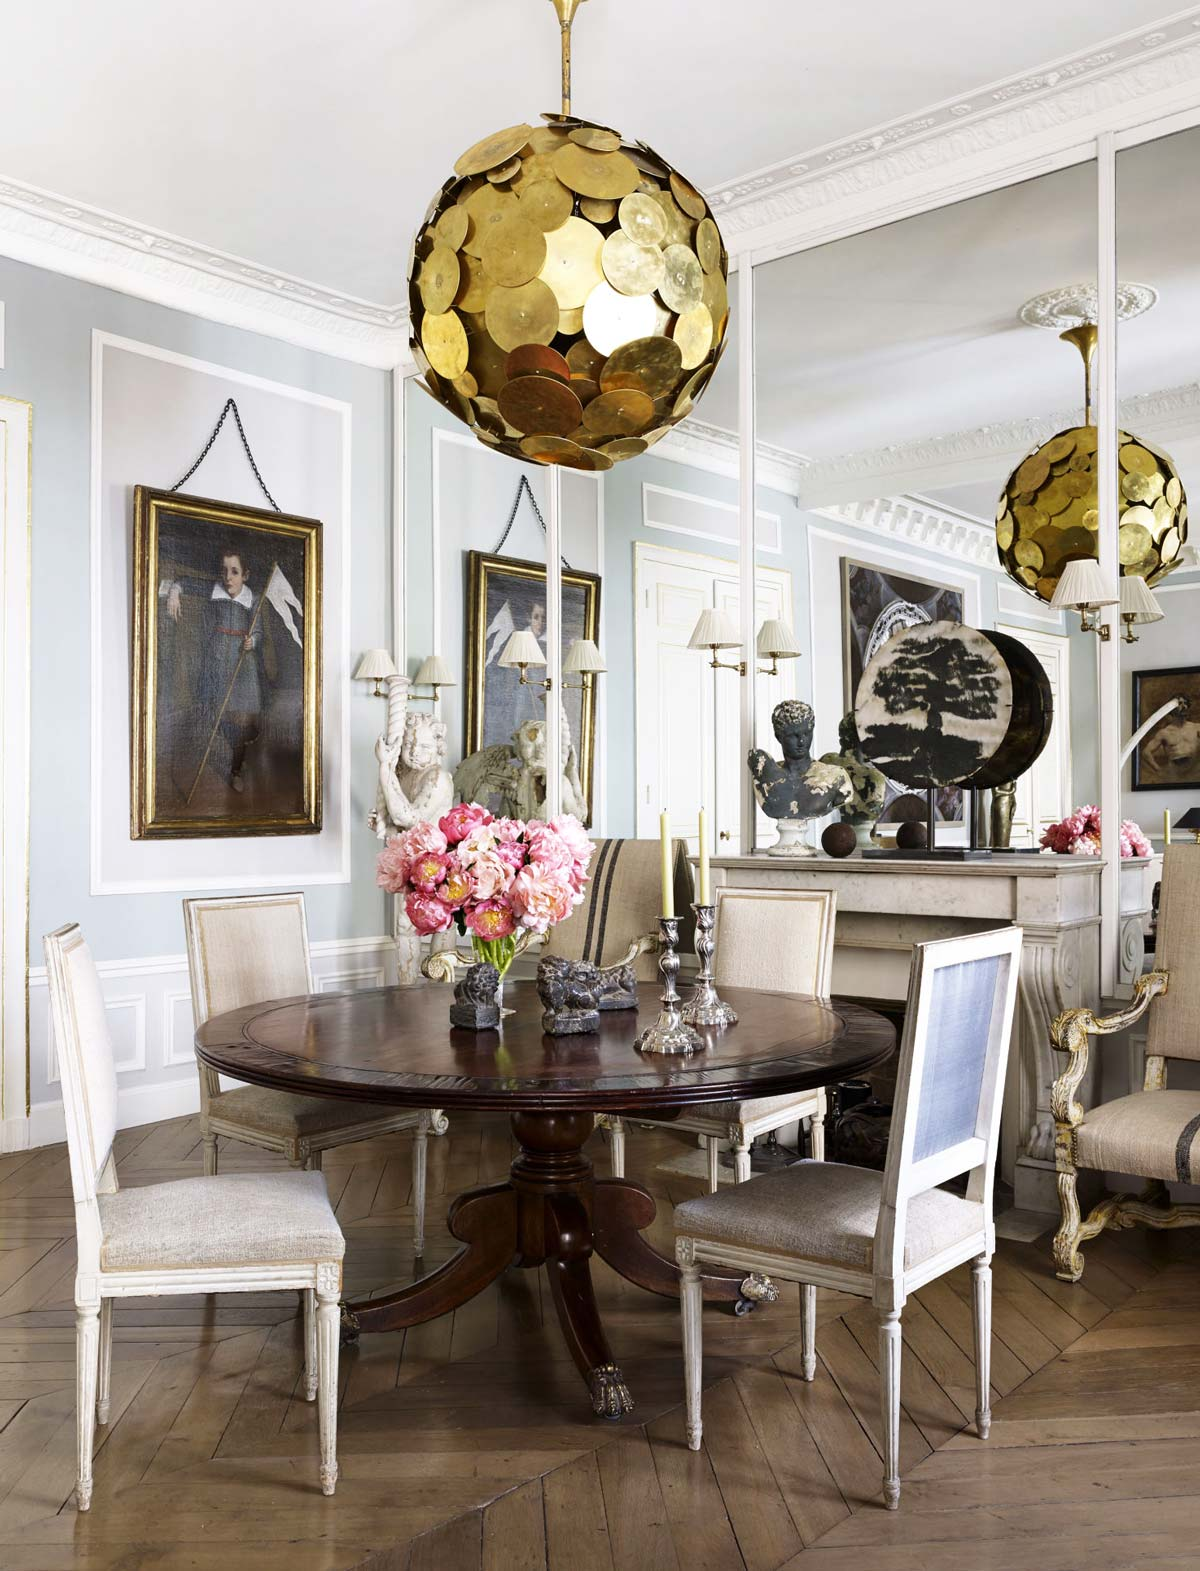 Chic french dining room with modern chandelier and traditional furniture via @thouswellblog